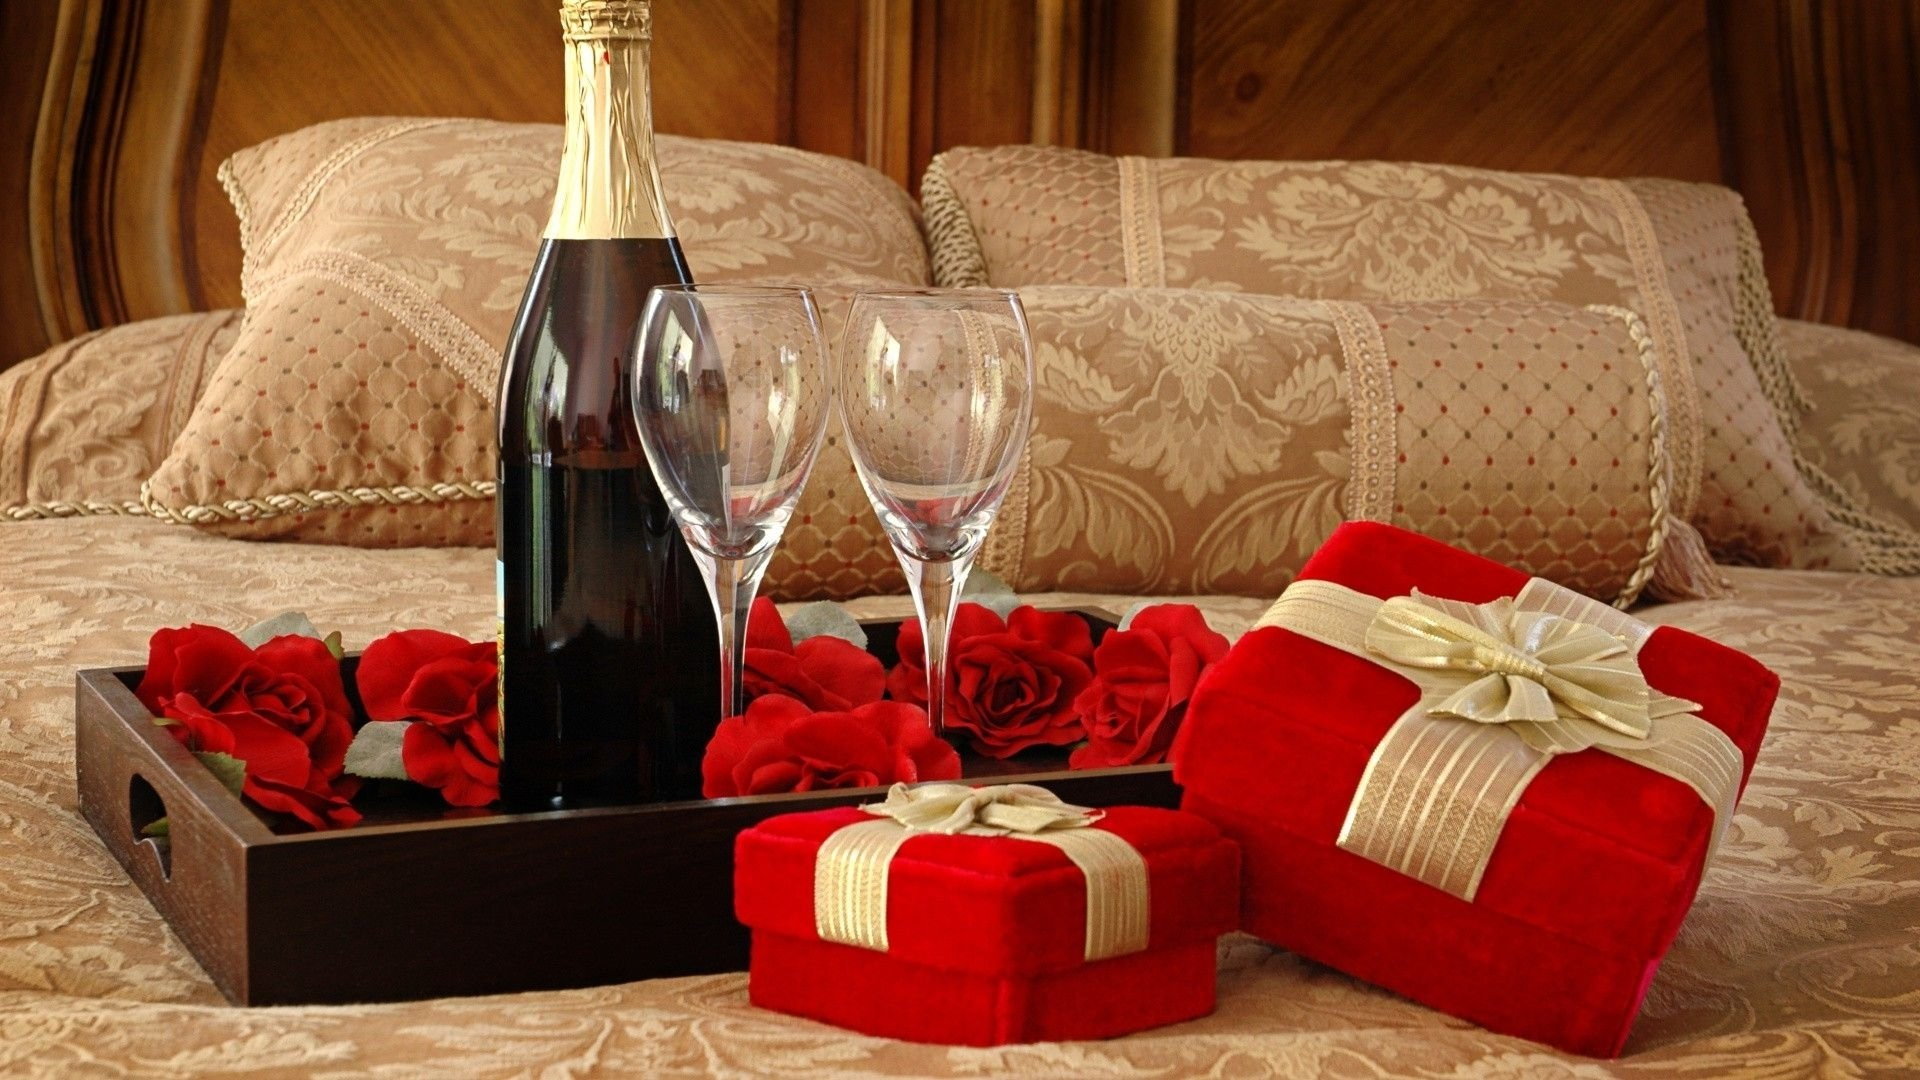 10 Best Romantic Birthday Gift Ideas Her romantic and inexpensive gift ideas for the women in your life 3